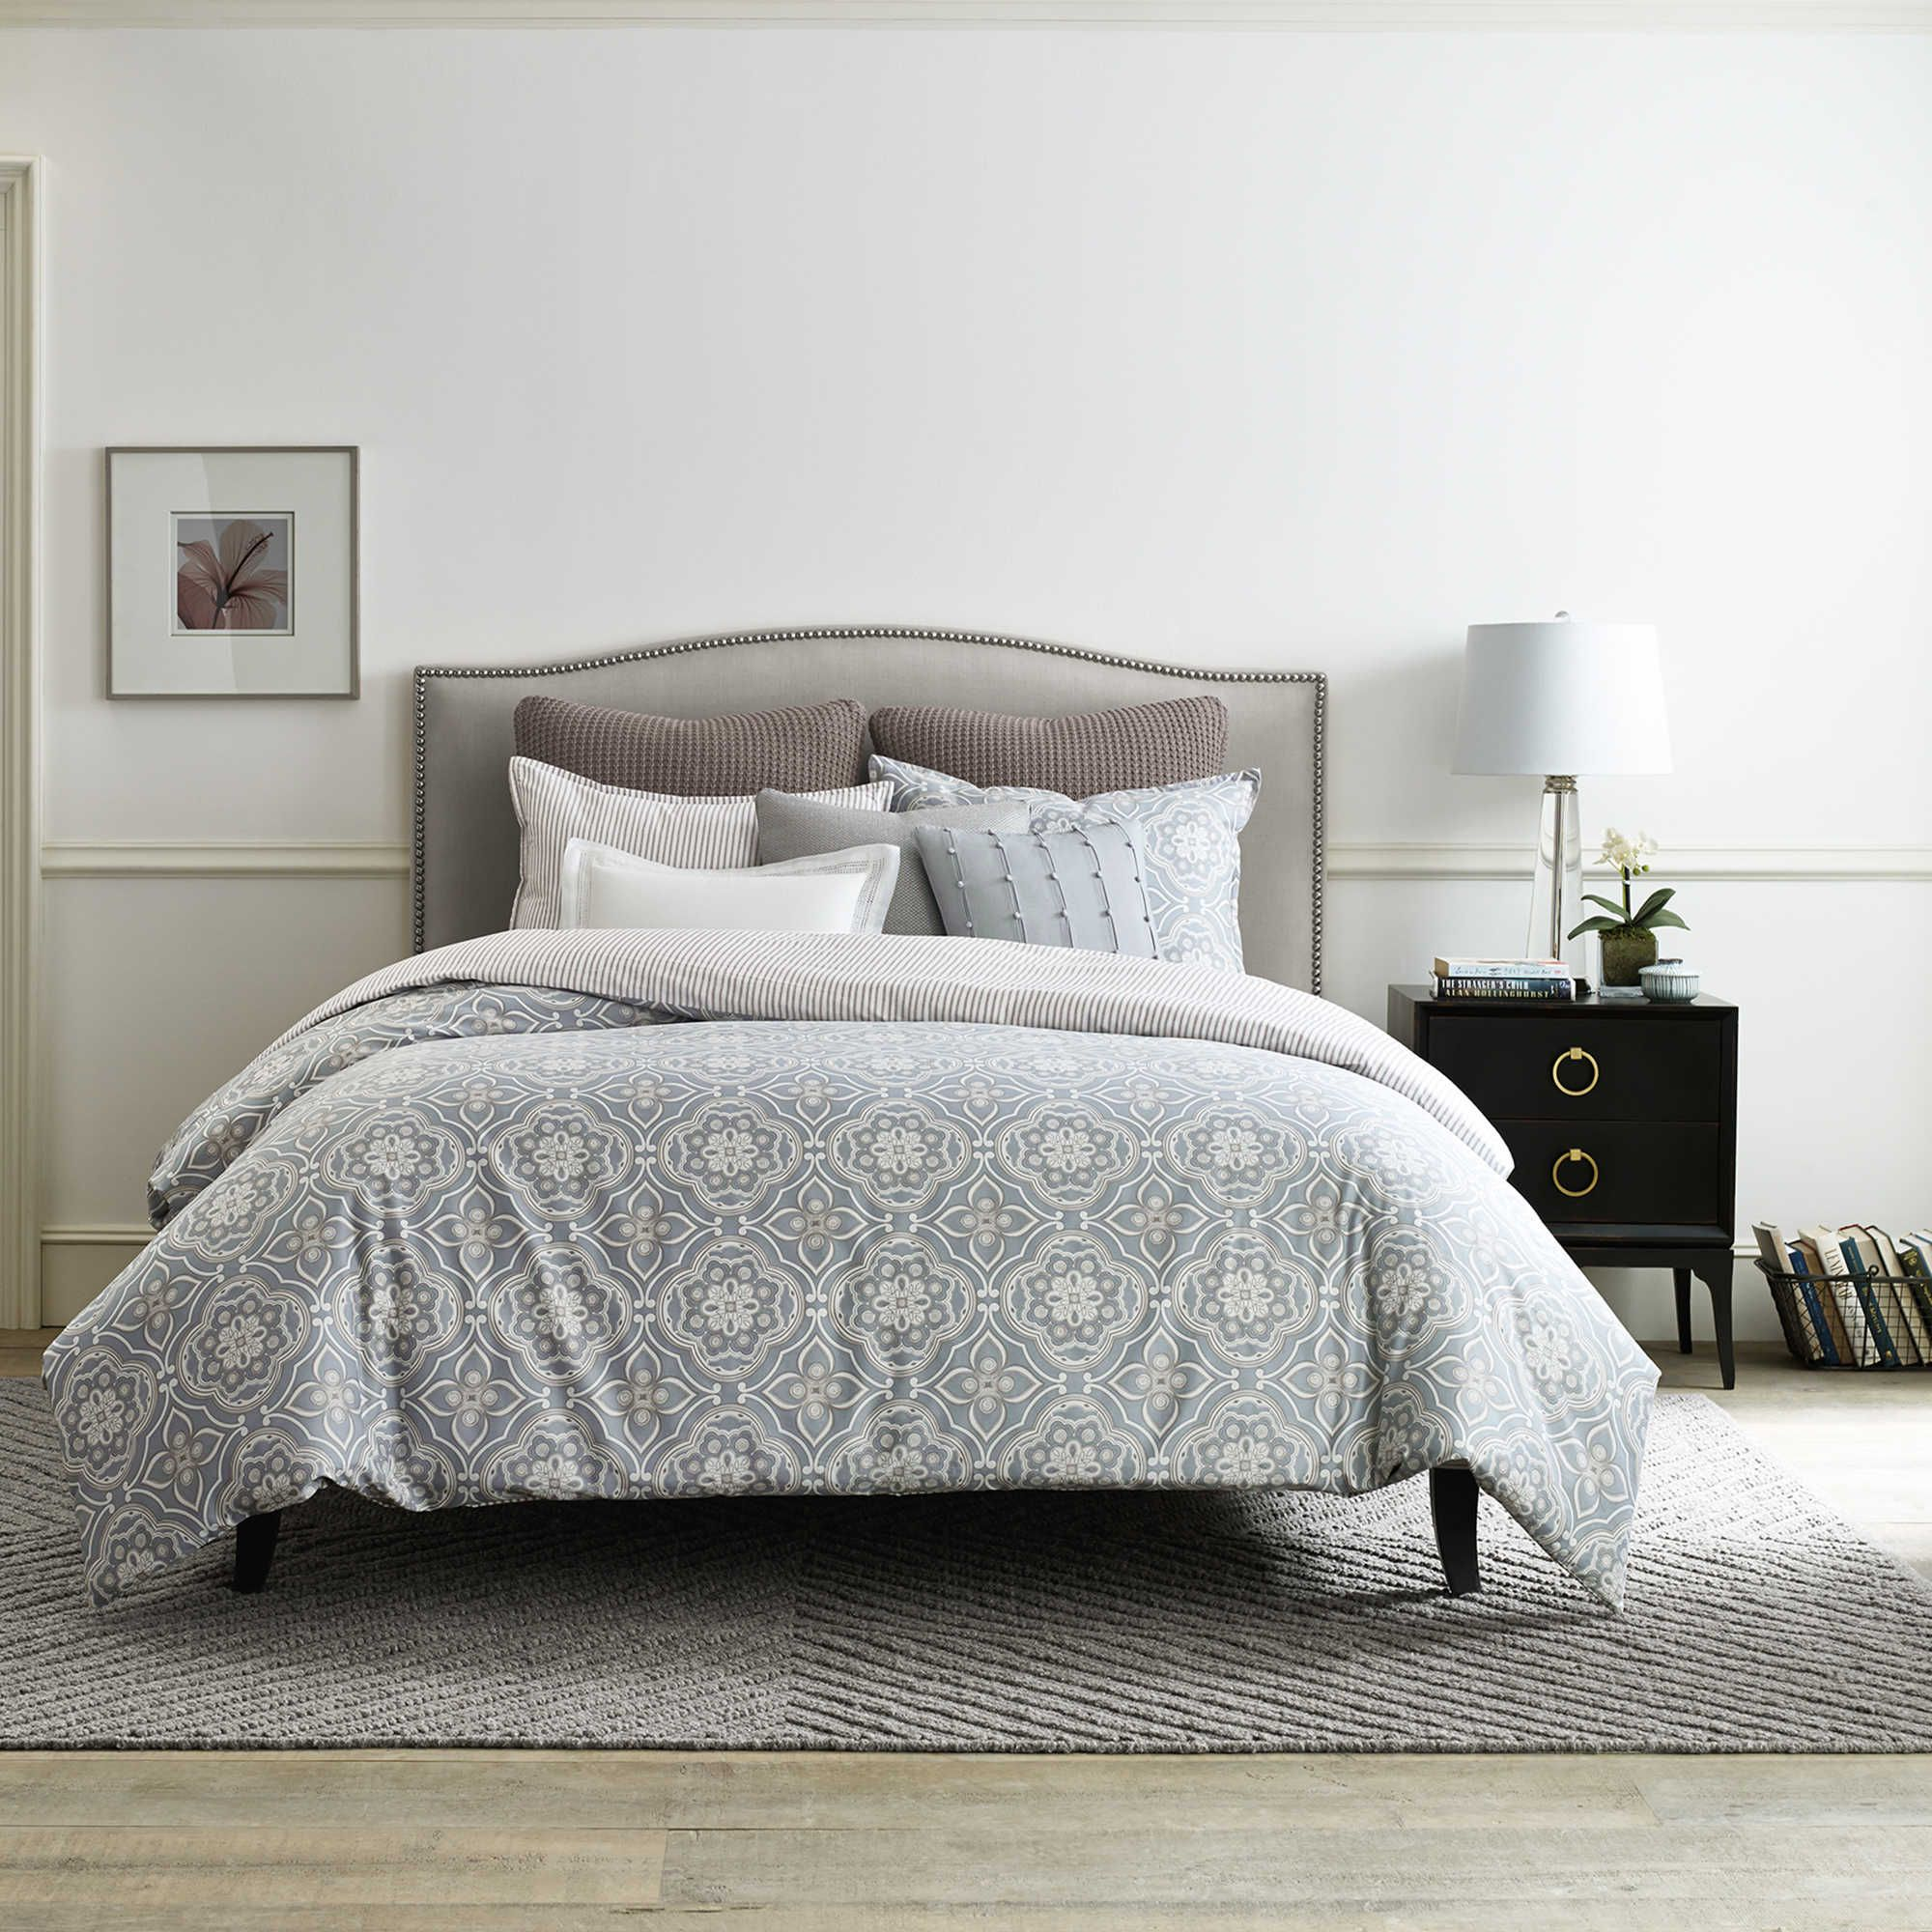 Bed Bath And Beyond Real Simple Anya Reversible Duvet Cover In